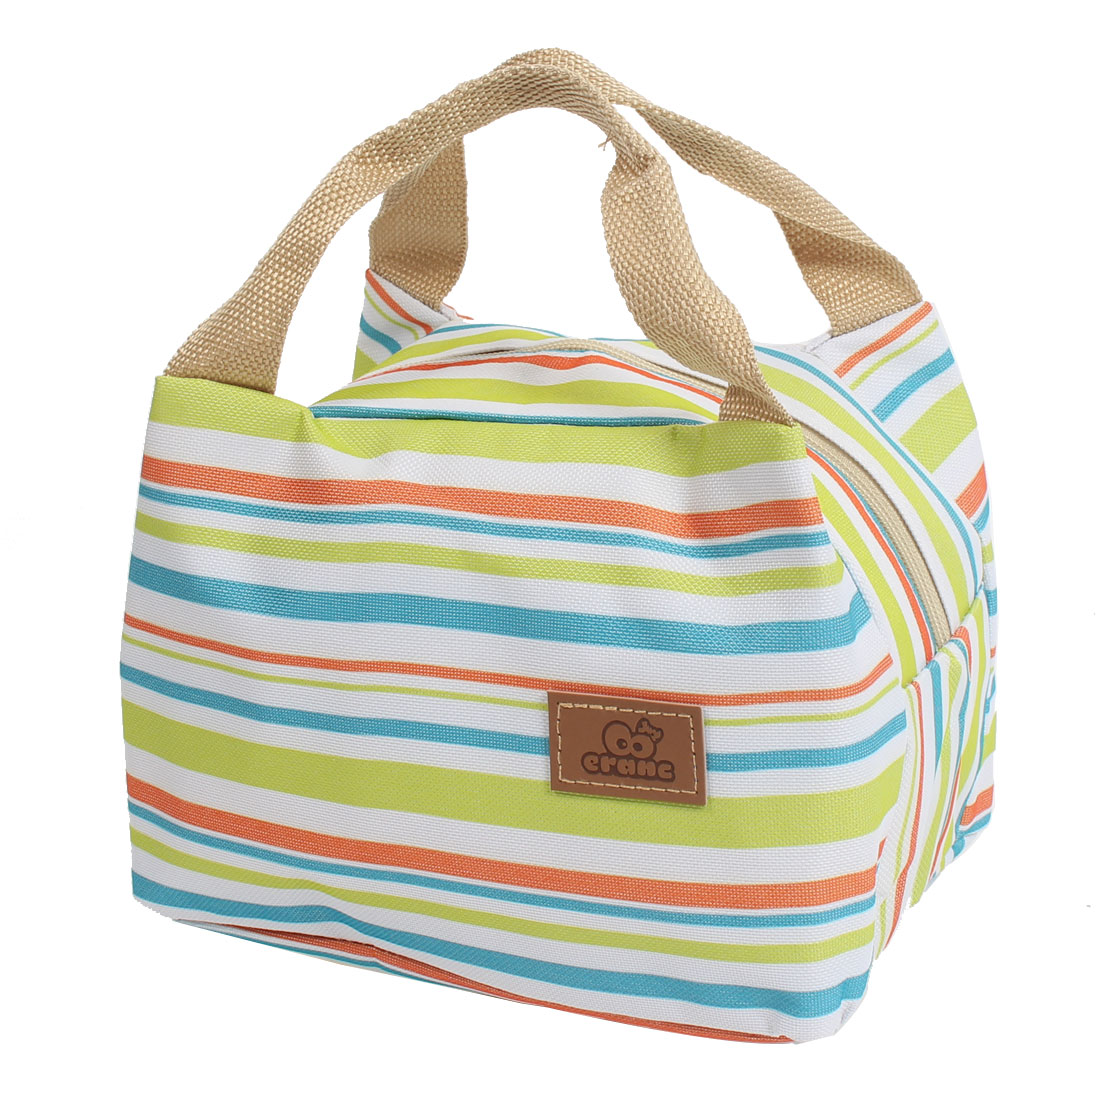 Canvas Zippered Thermal Insulation Cooler Insulated Lunch Tote Bag Multicolor Stripe Green